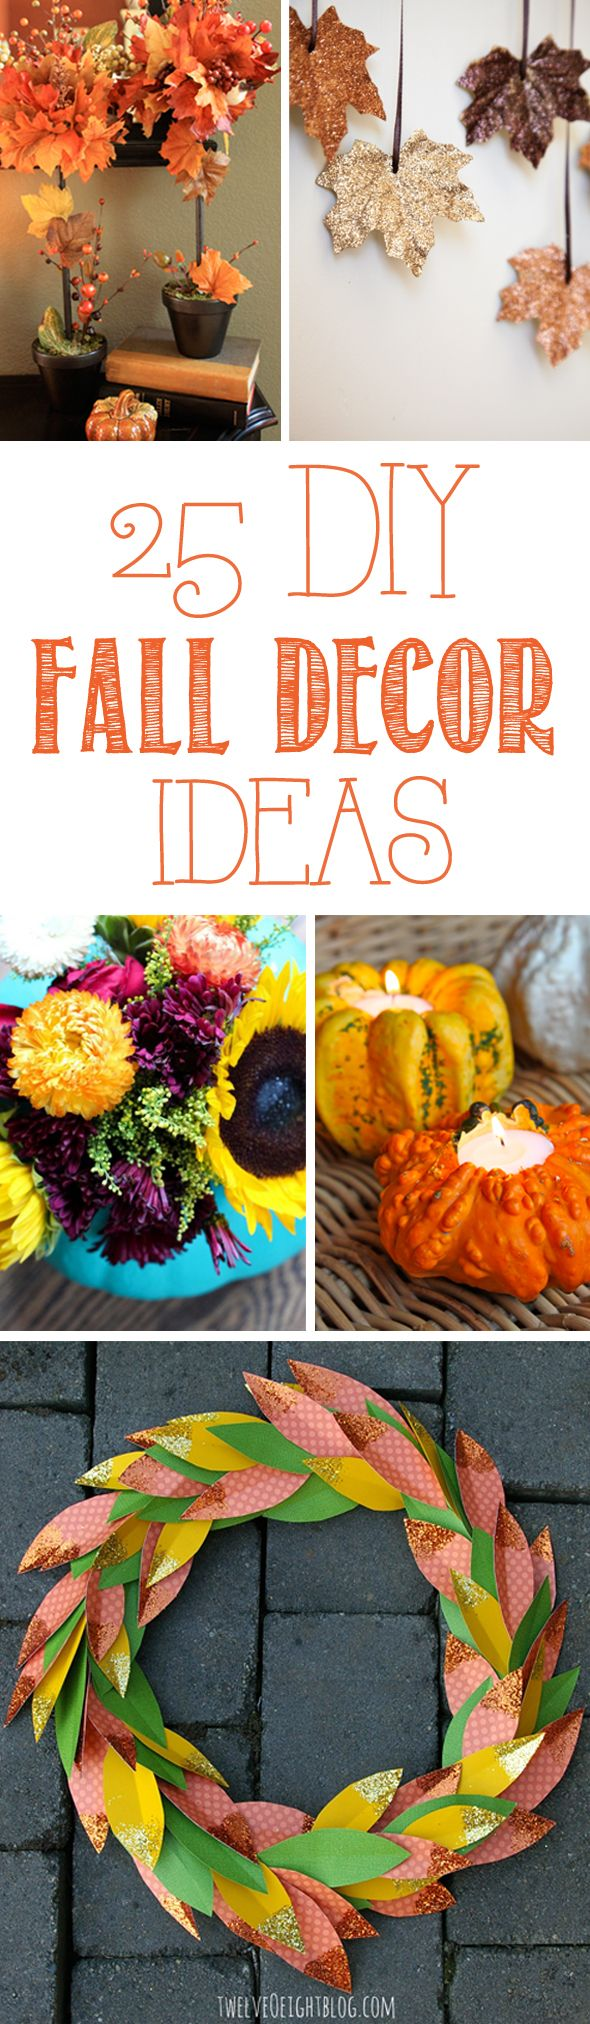 25 DIY Fall Decor Ideas - Pretty My Party - Party Ideas